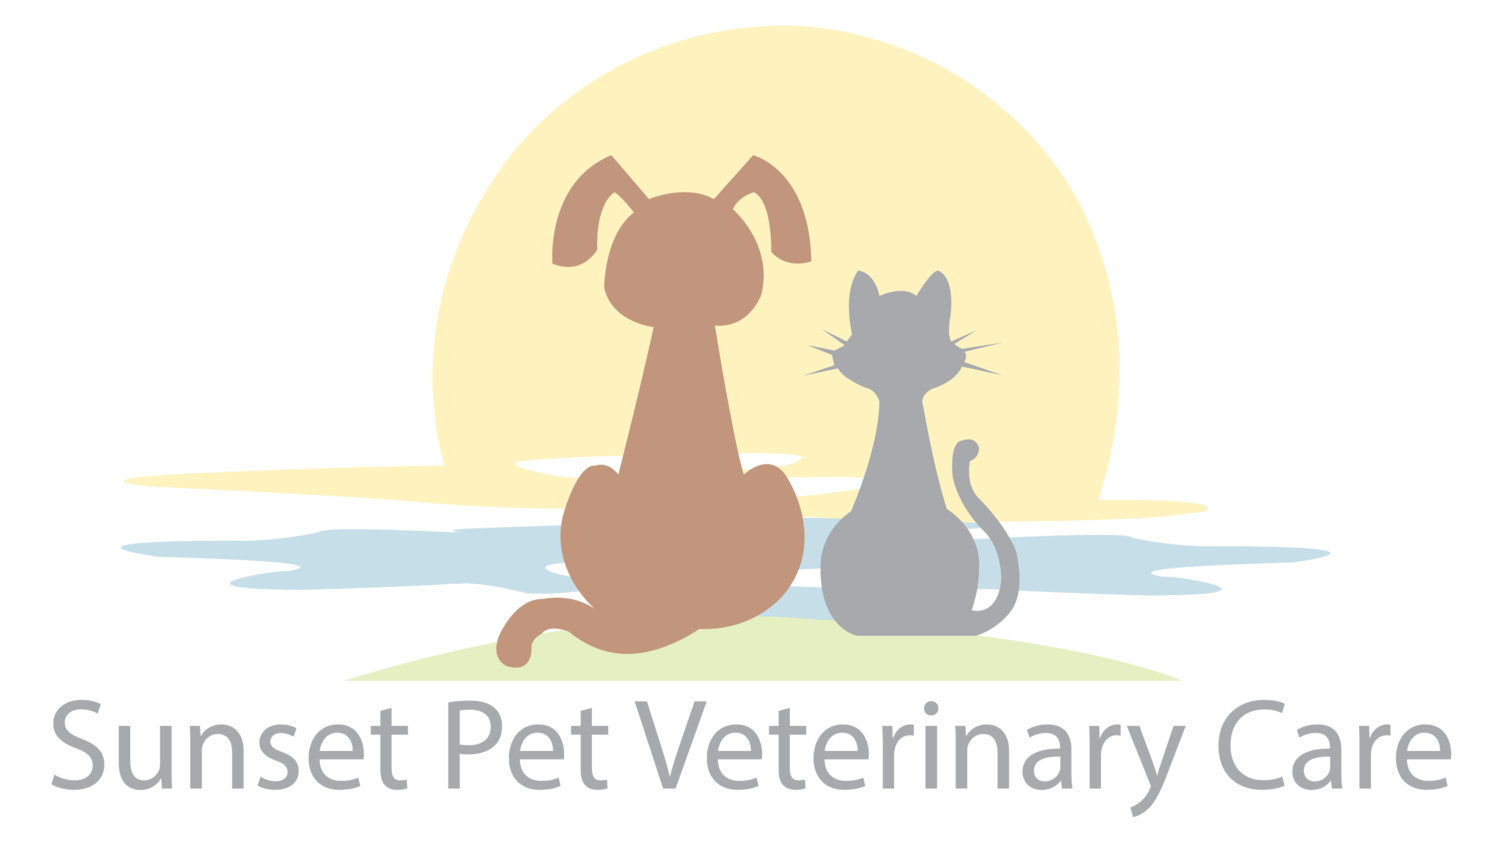 Sunset Pet Veterinary Care